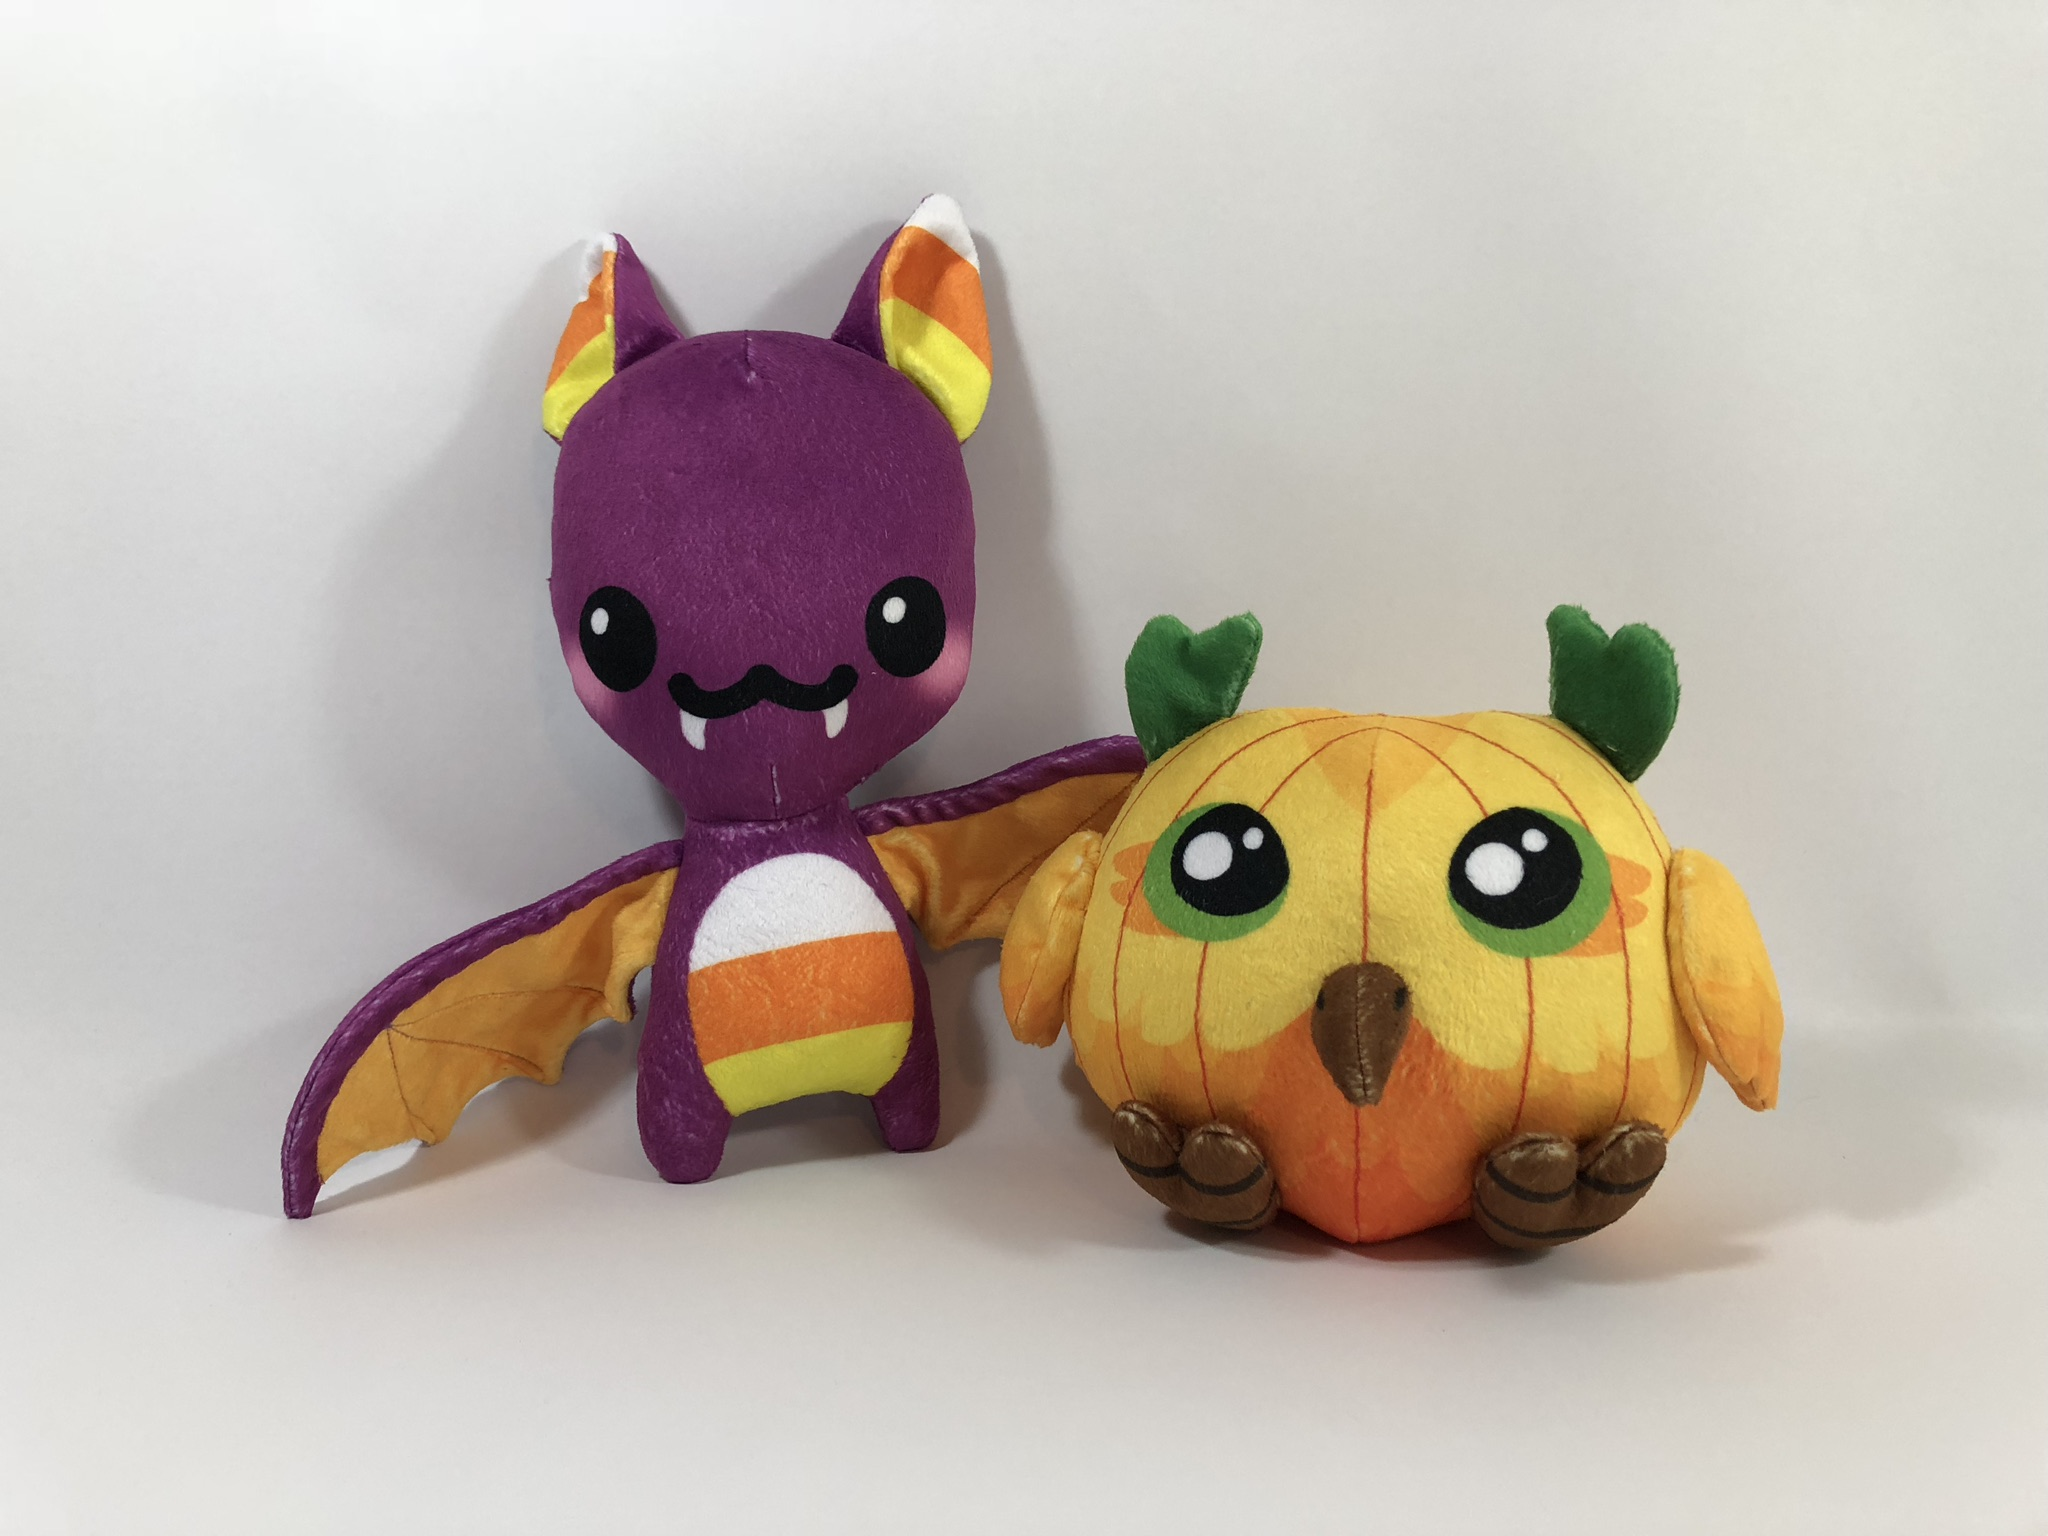 Purple and candy corn bat plush and an owl plush with a pumpkin design.